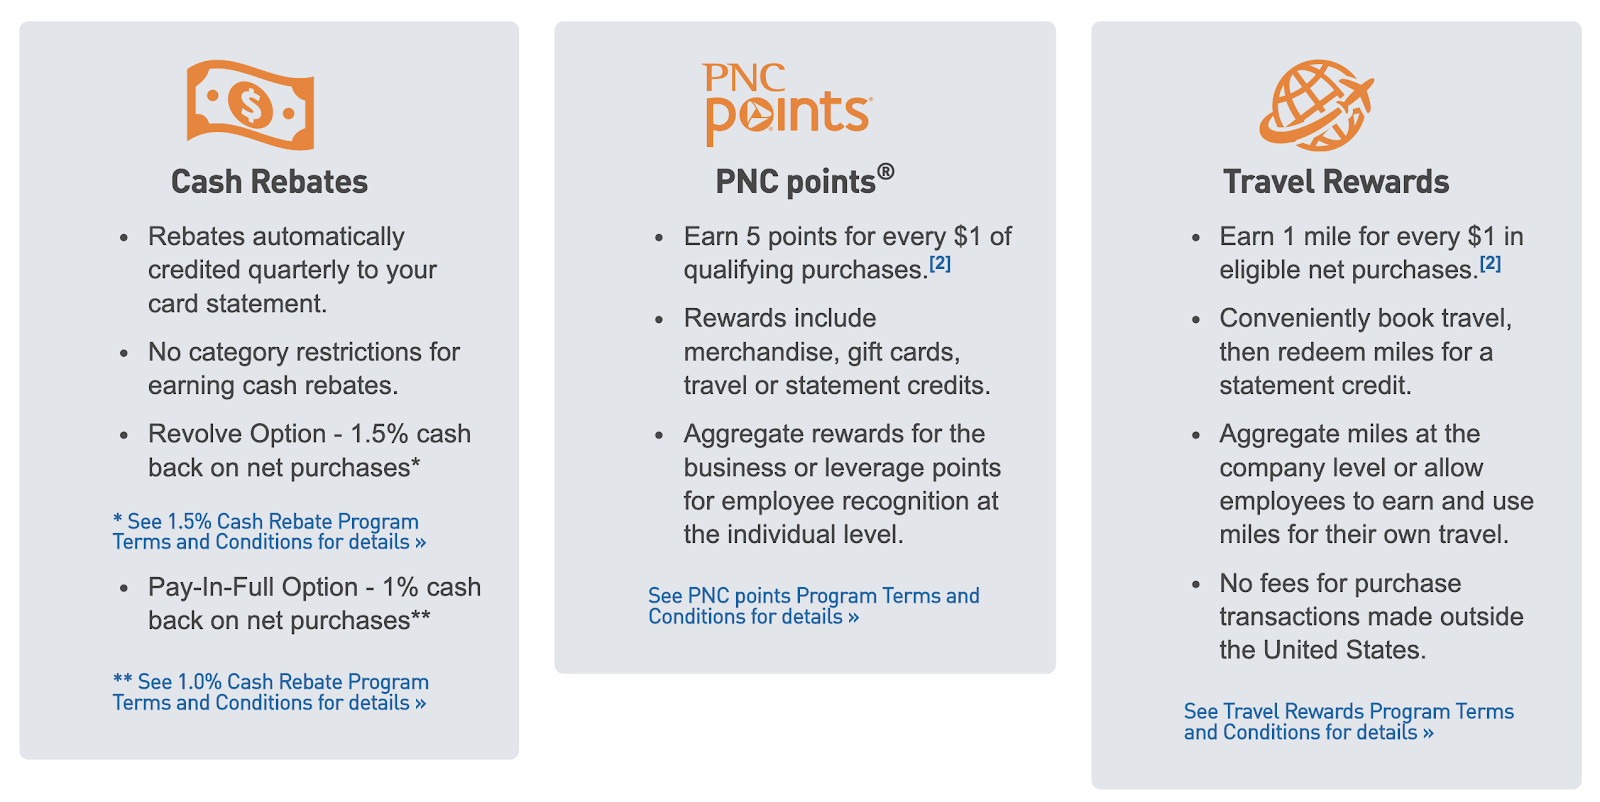 pnc cash rewards and points and travel